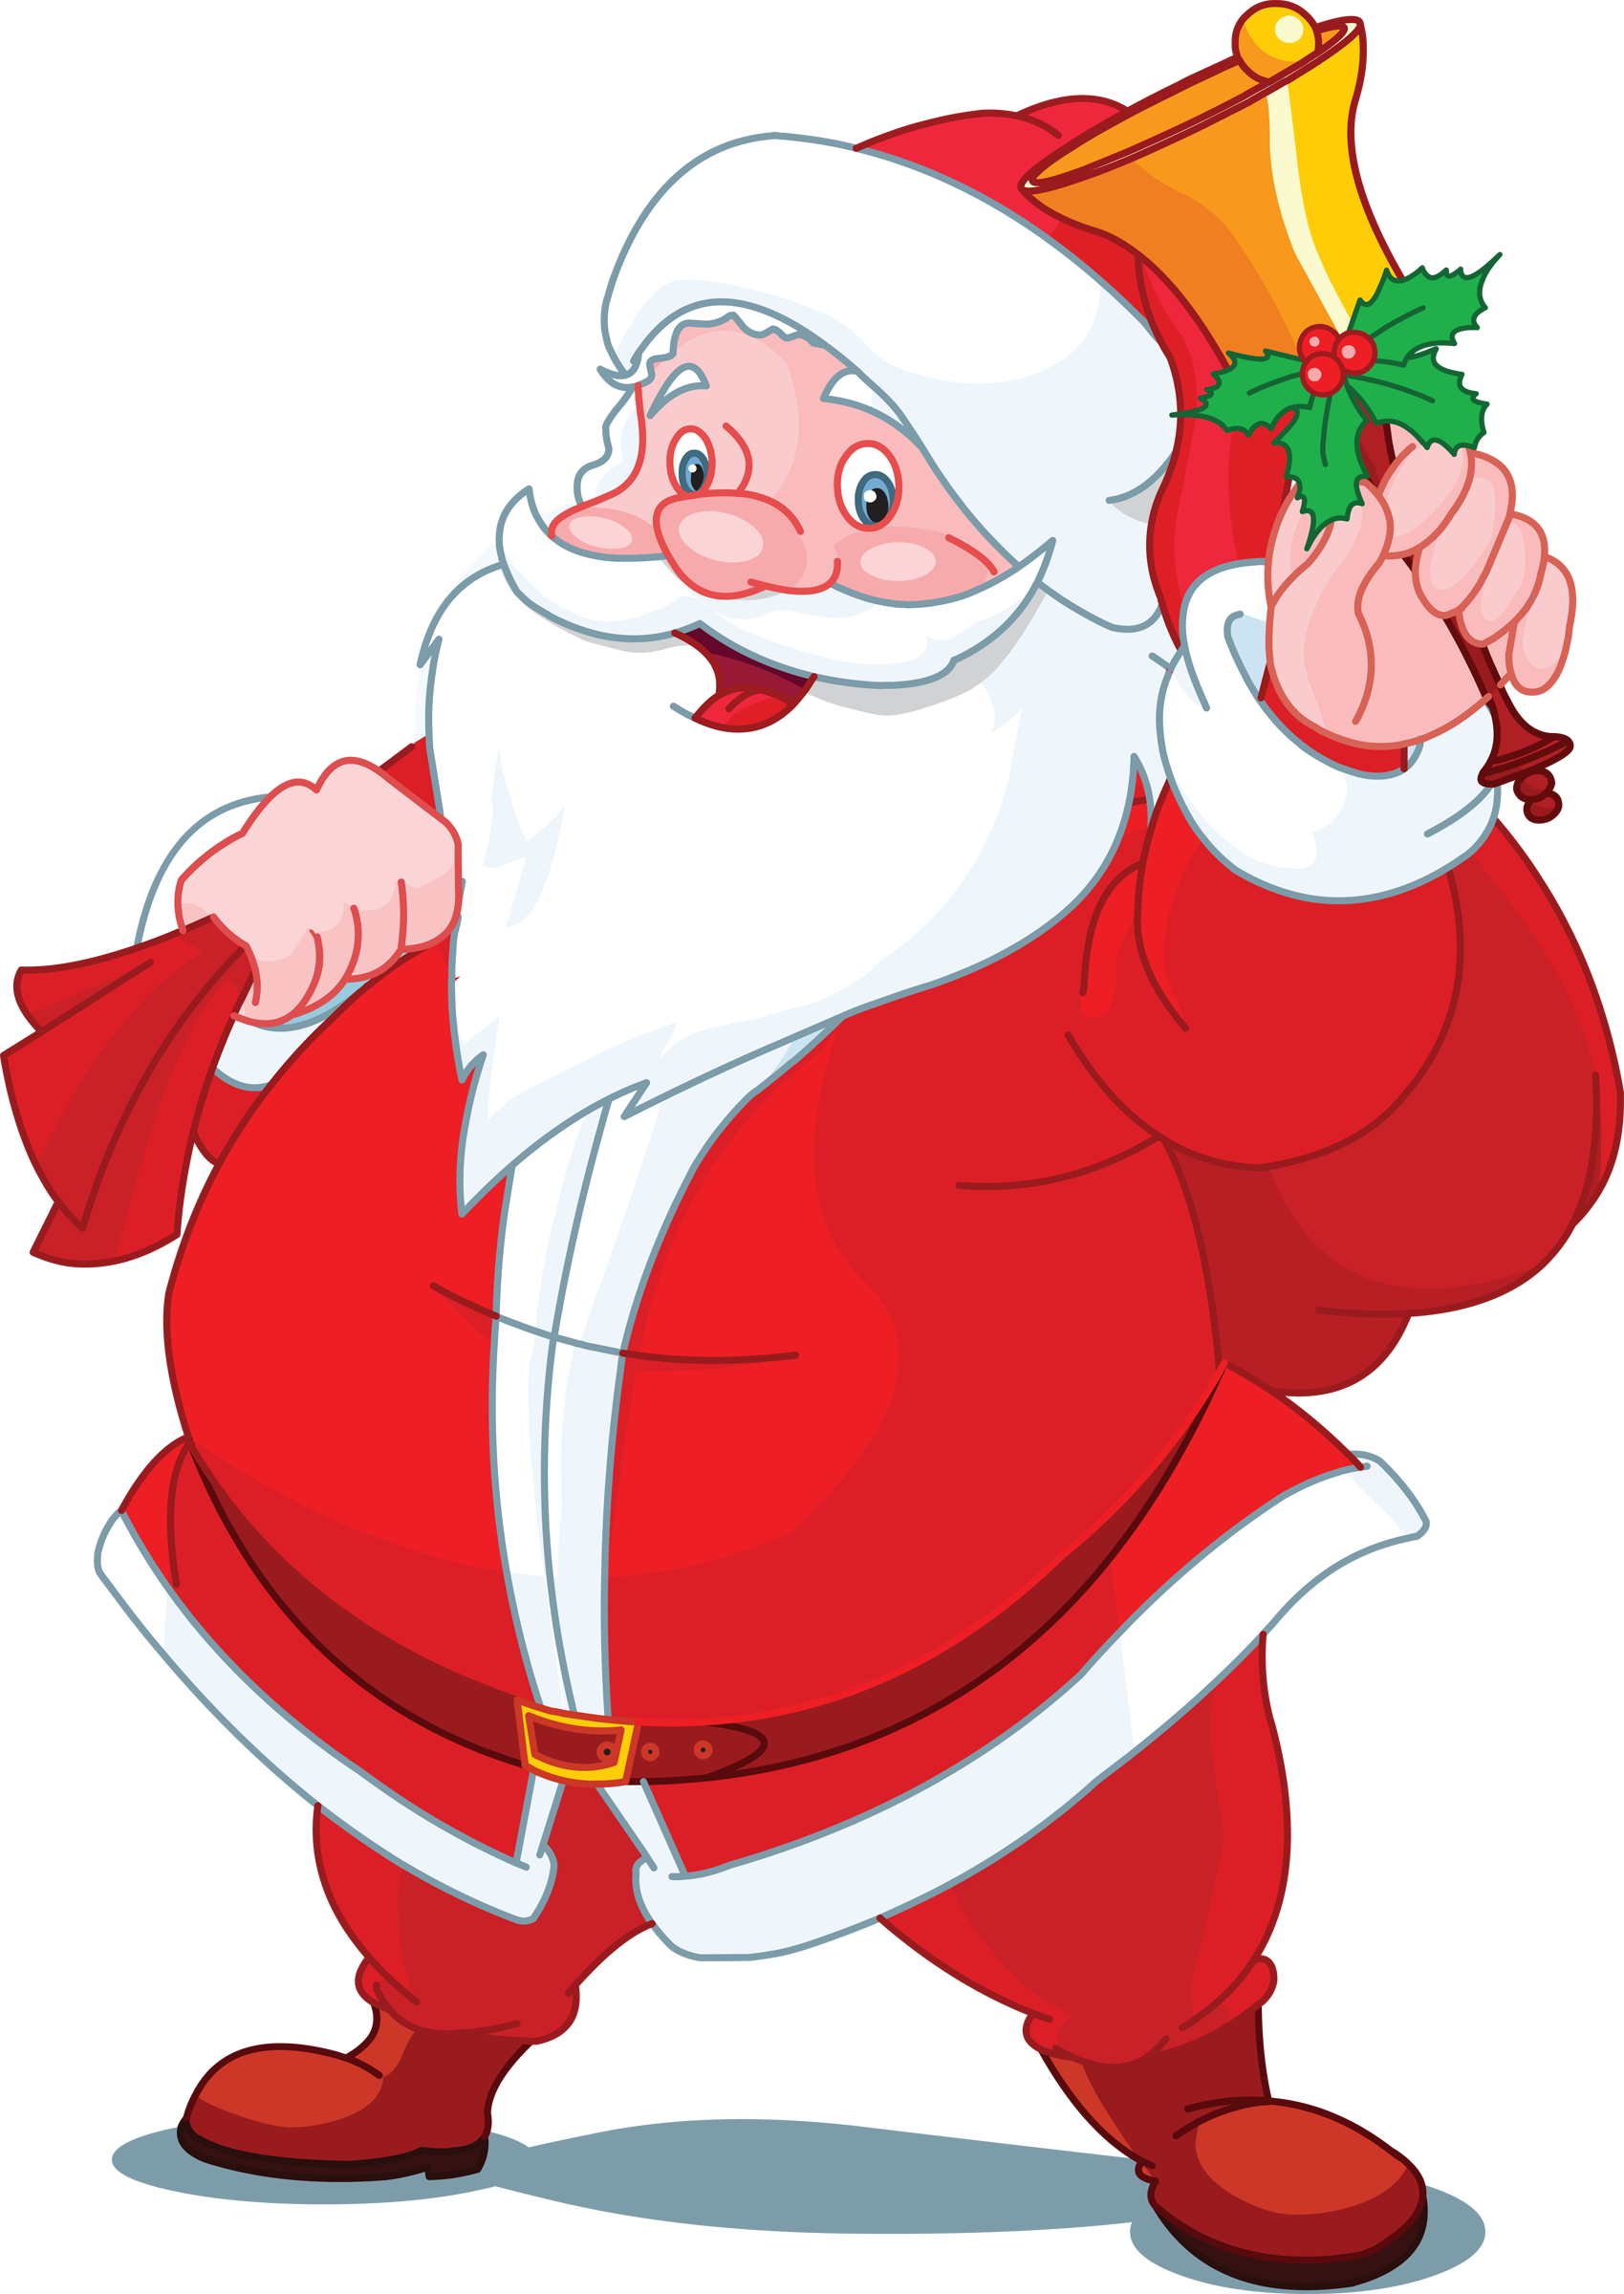 CHRISTMAS SANTA CLIP ART Santa claus drawing, Santa